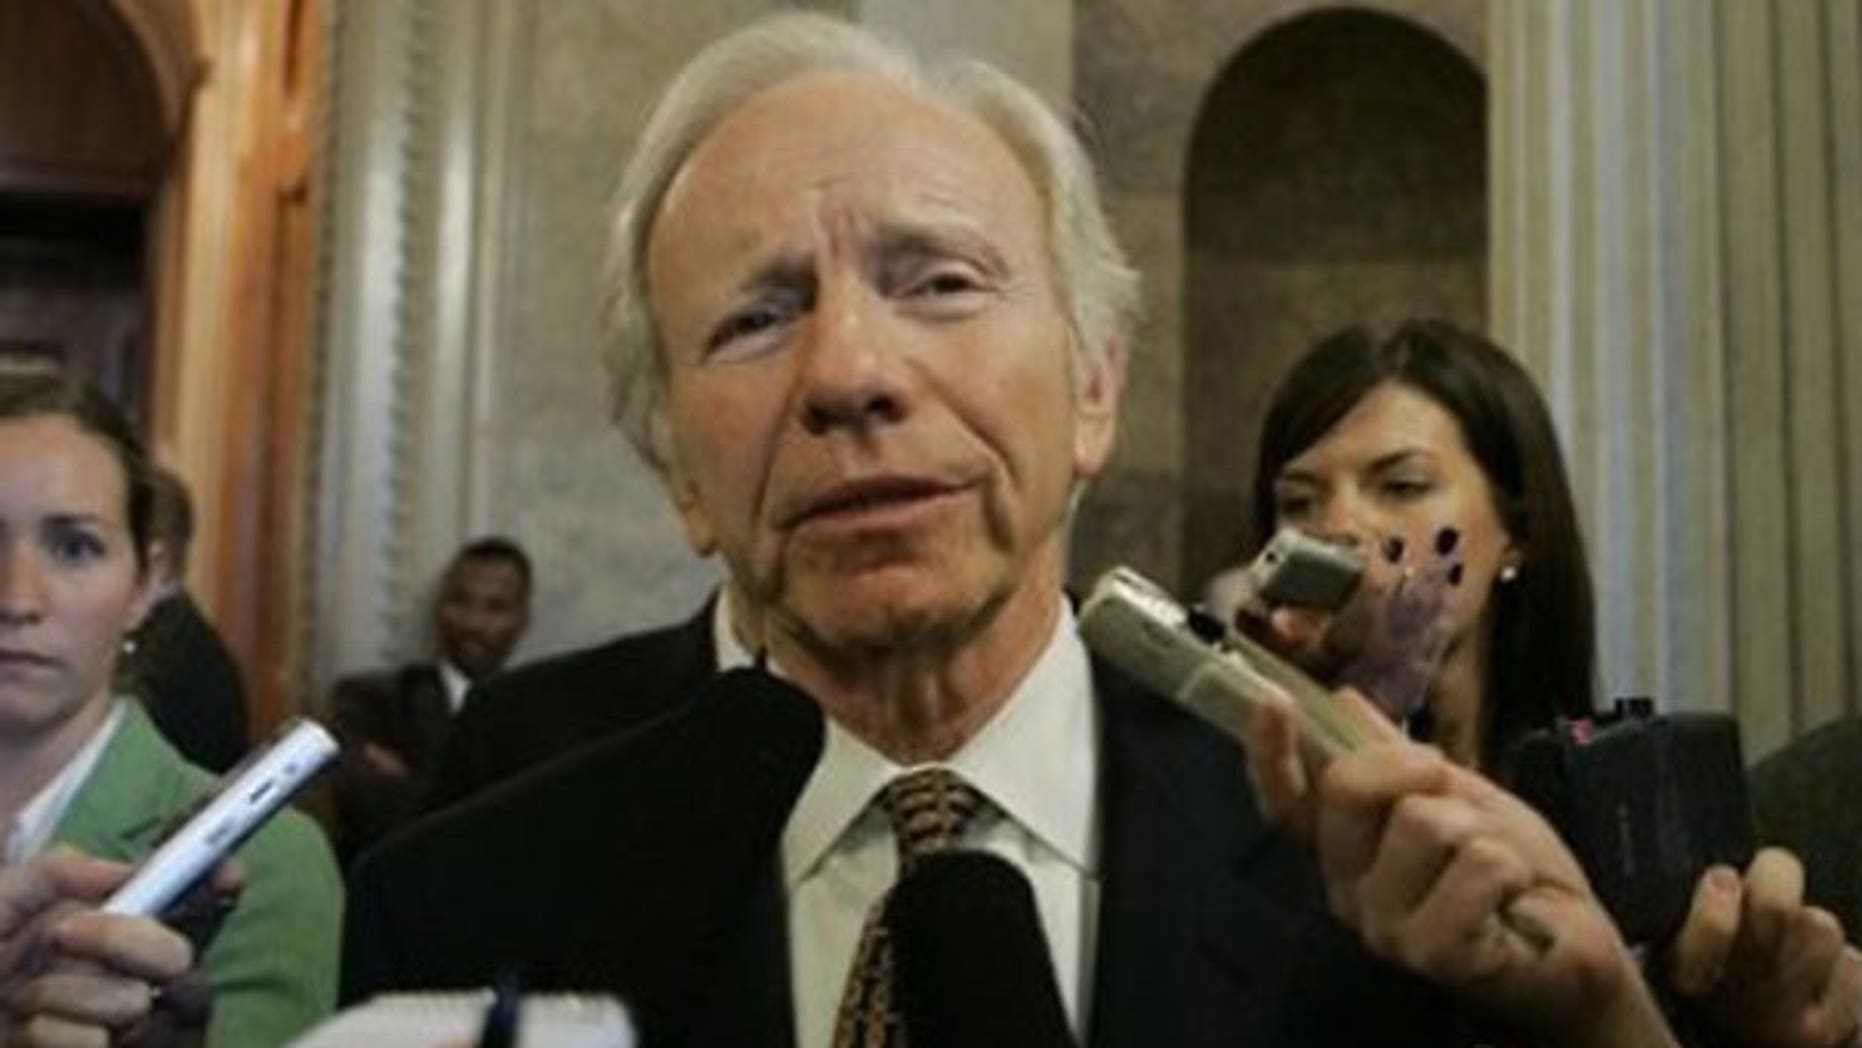 Connecticut Sen. Joe Lieberman